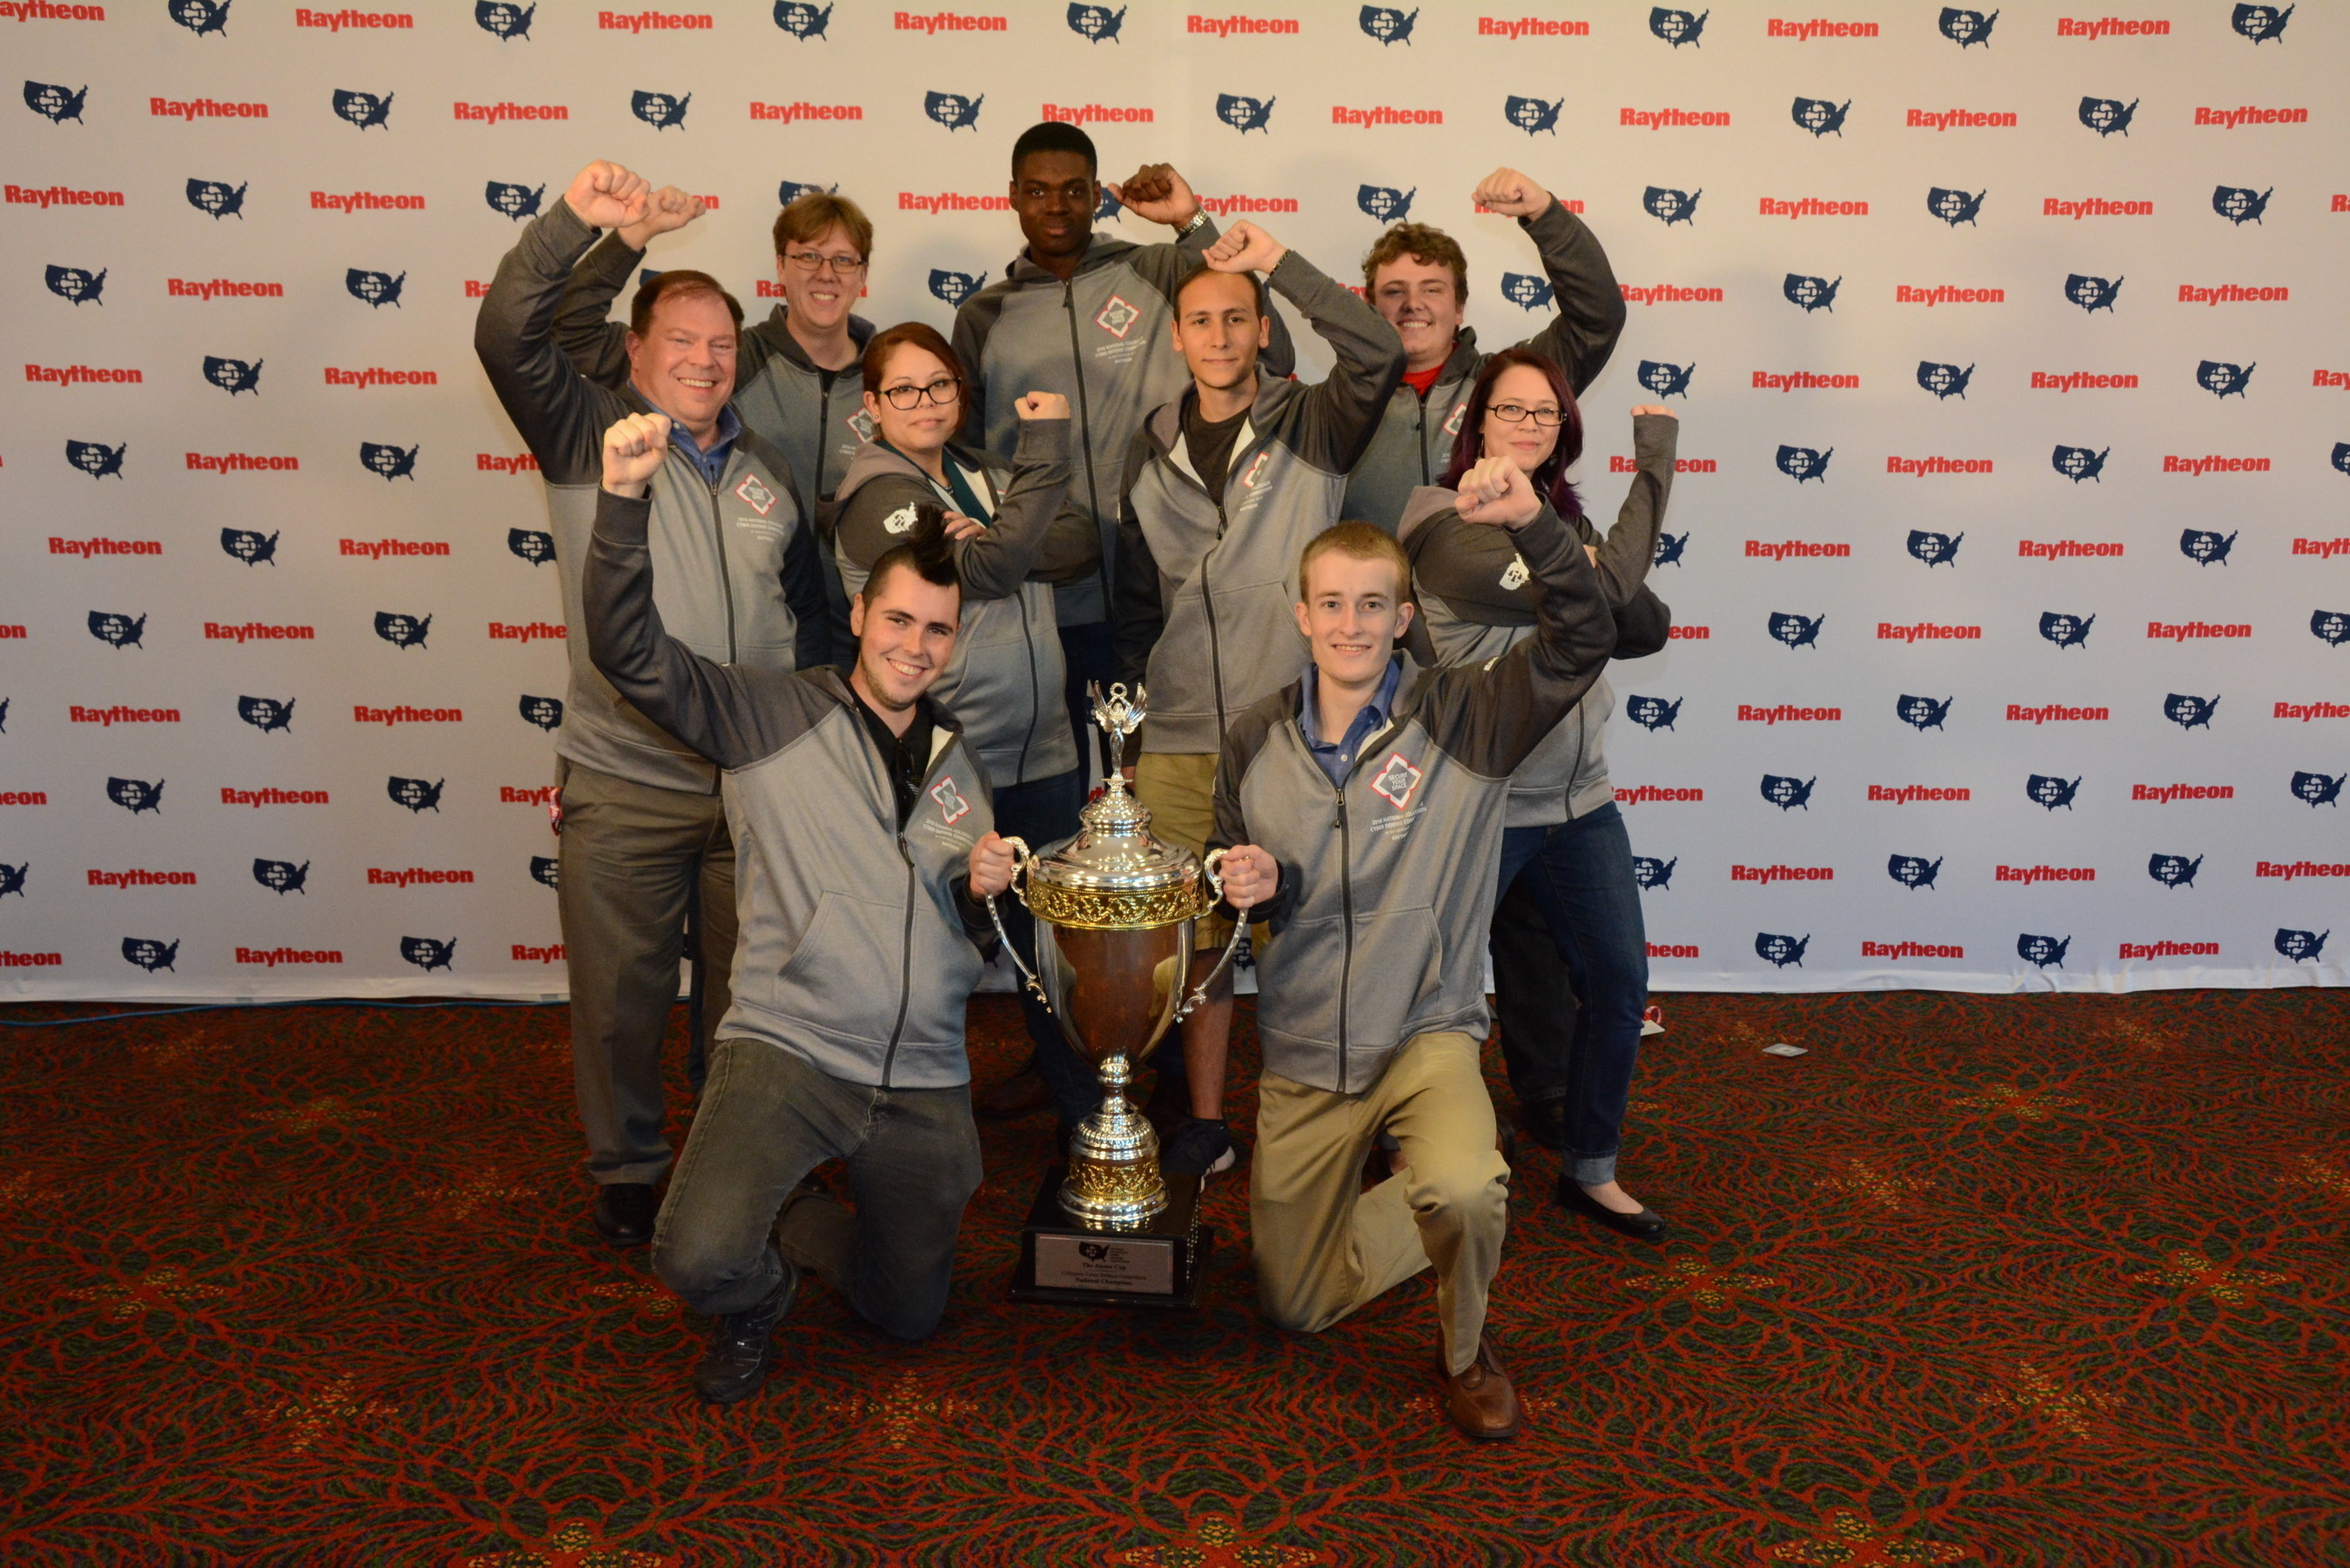 University of Central Florida becomes winningest National Collegiate Cyber Defense champion